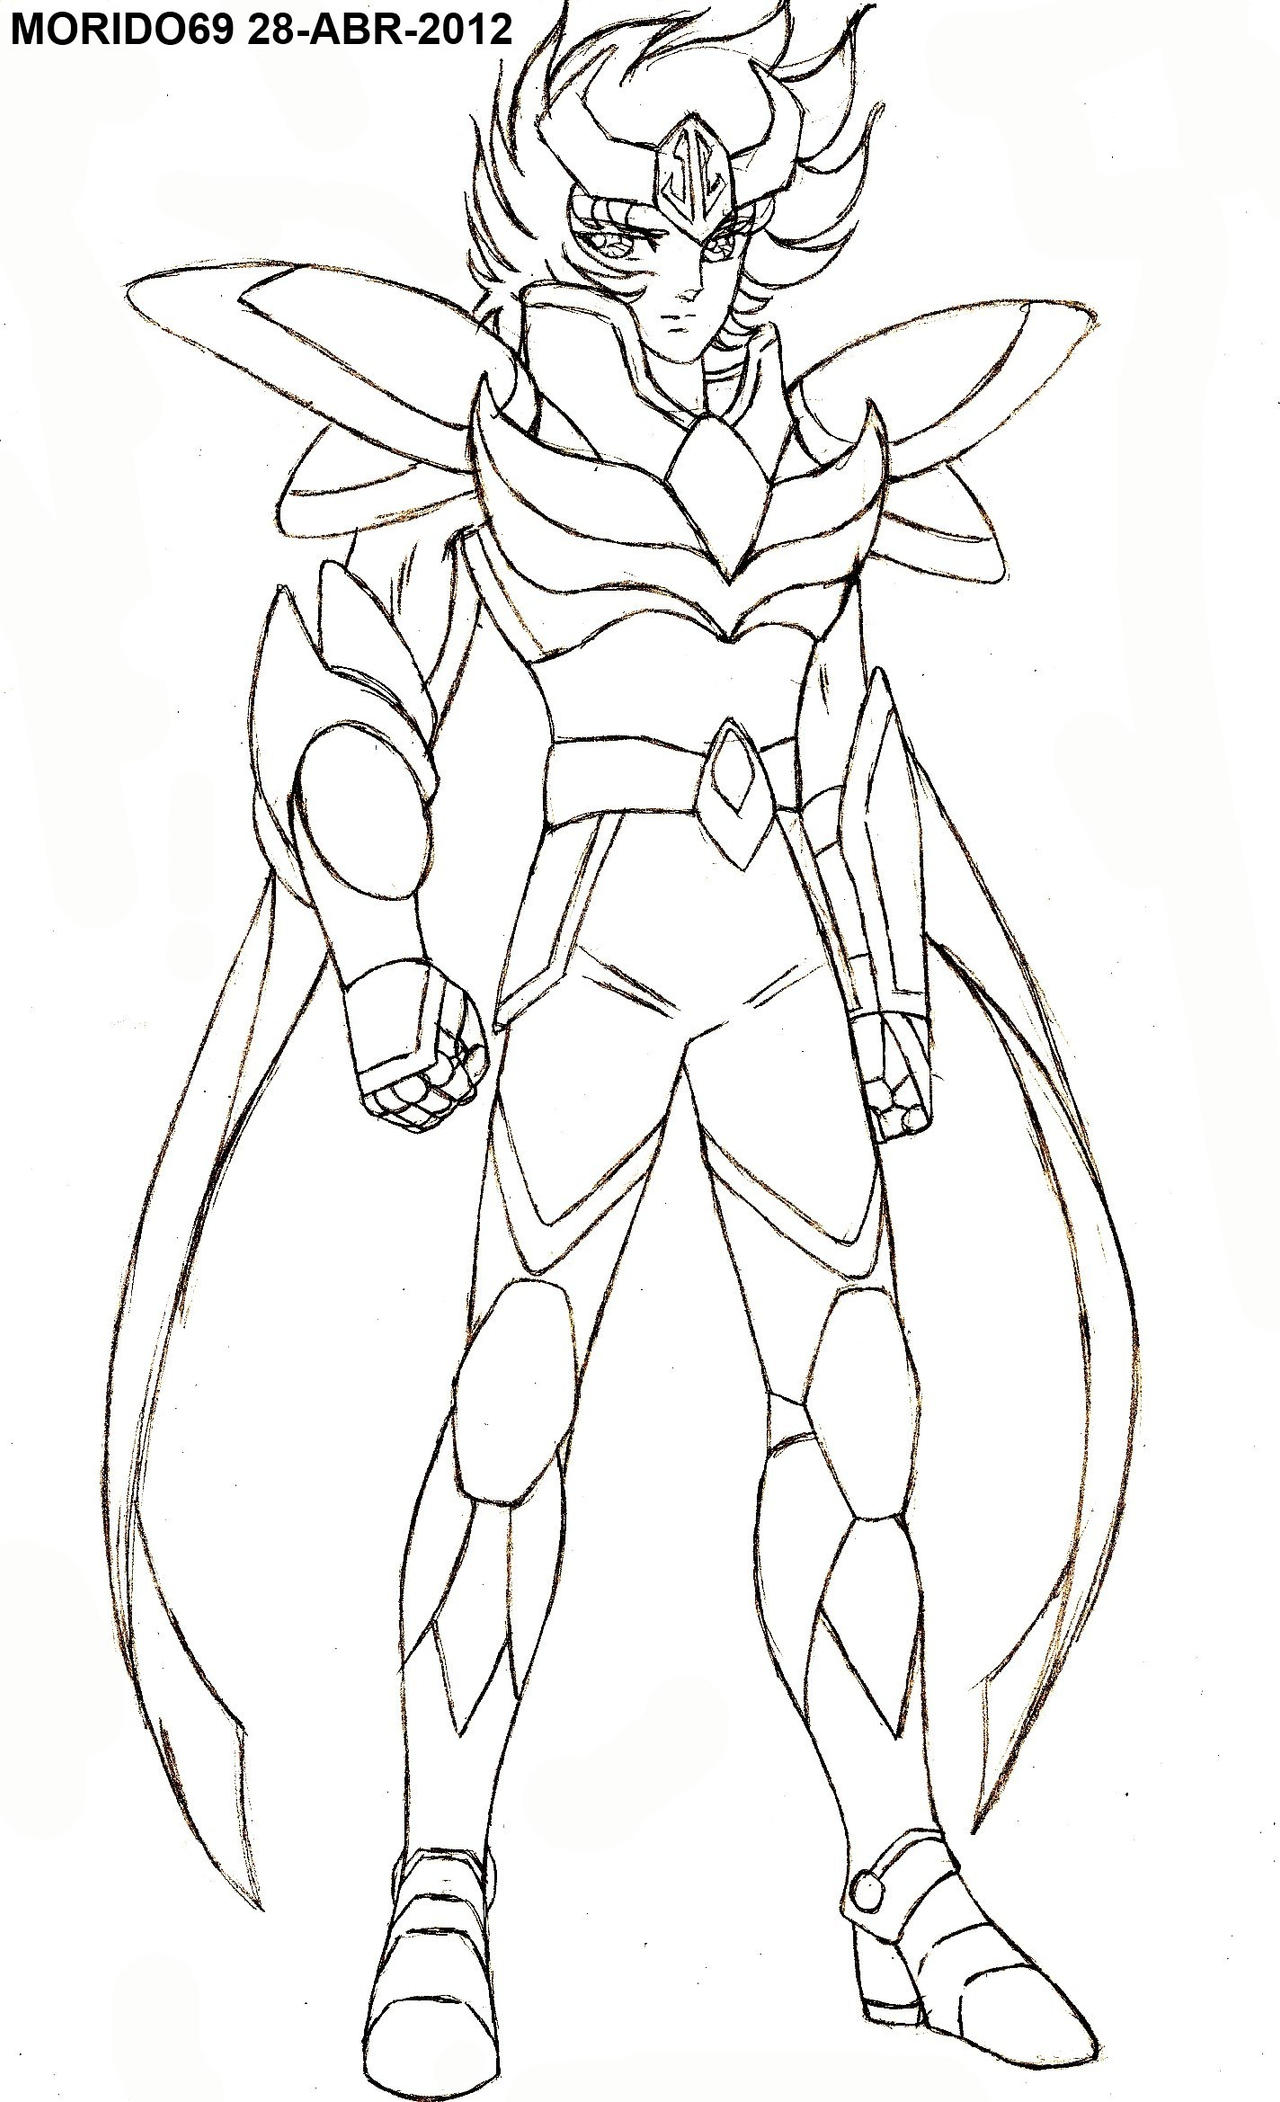 Fine Saint Seiya Coloring Pages Picture Collection - Best Coloring ...